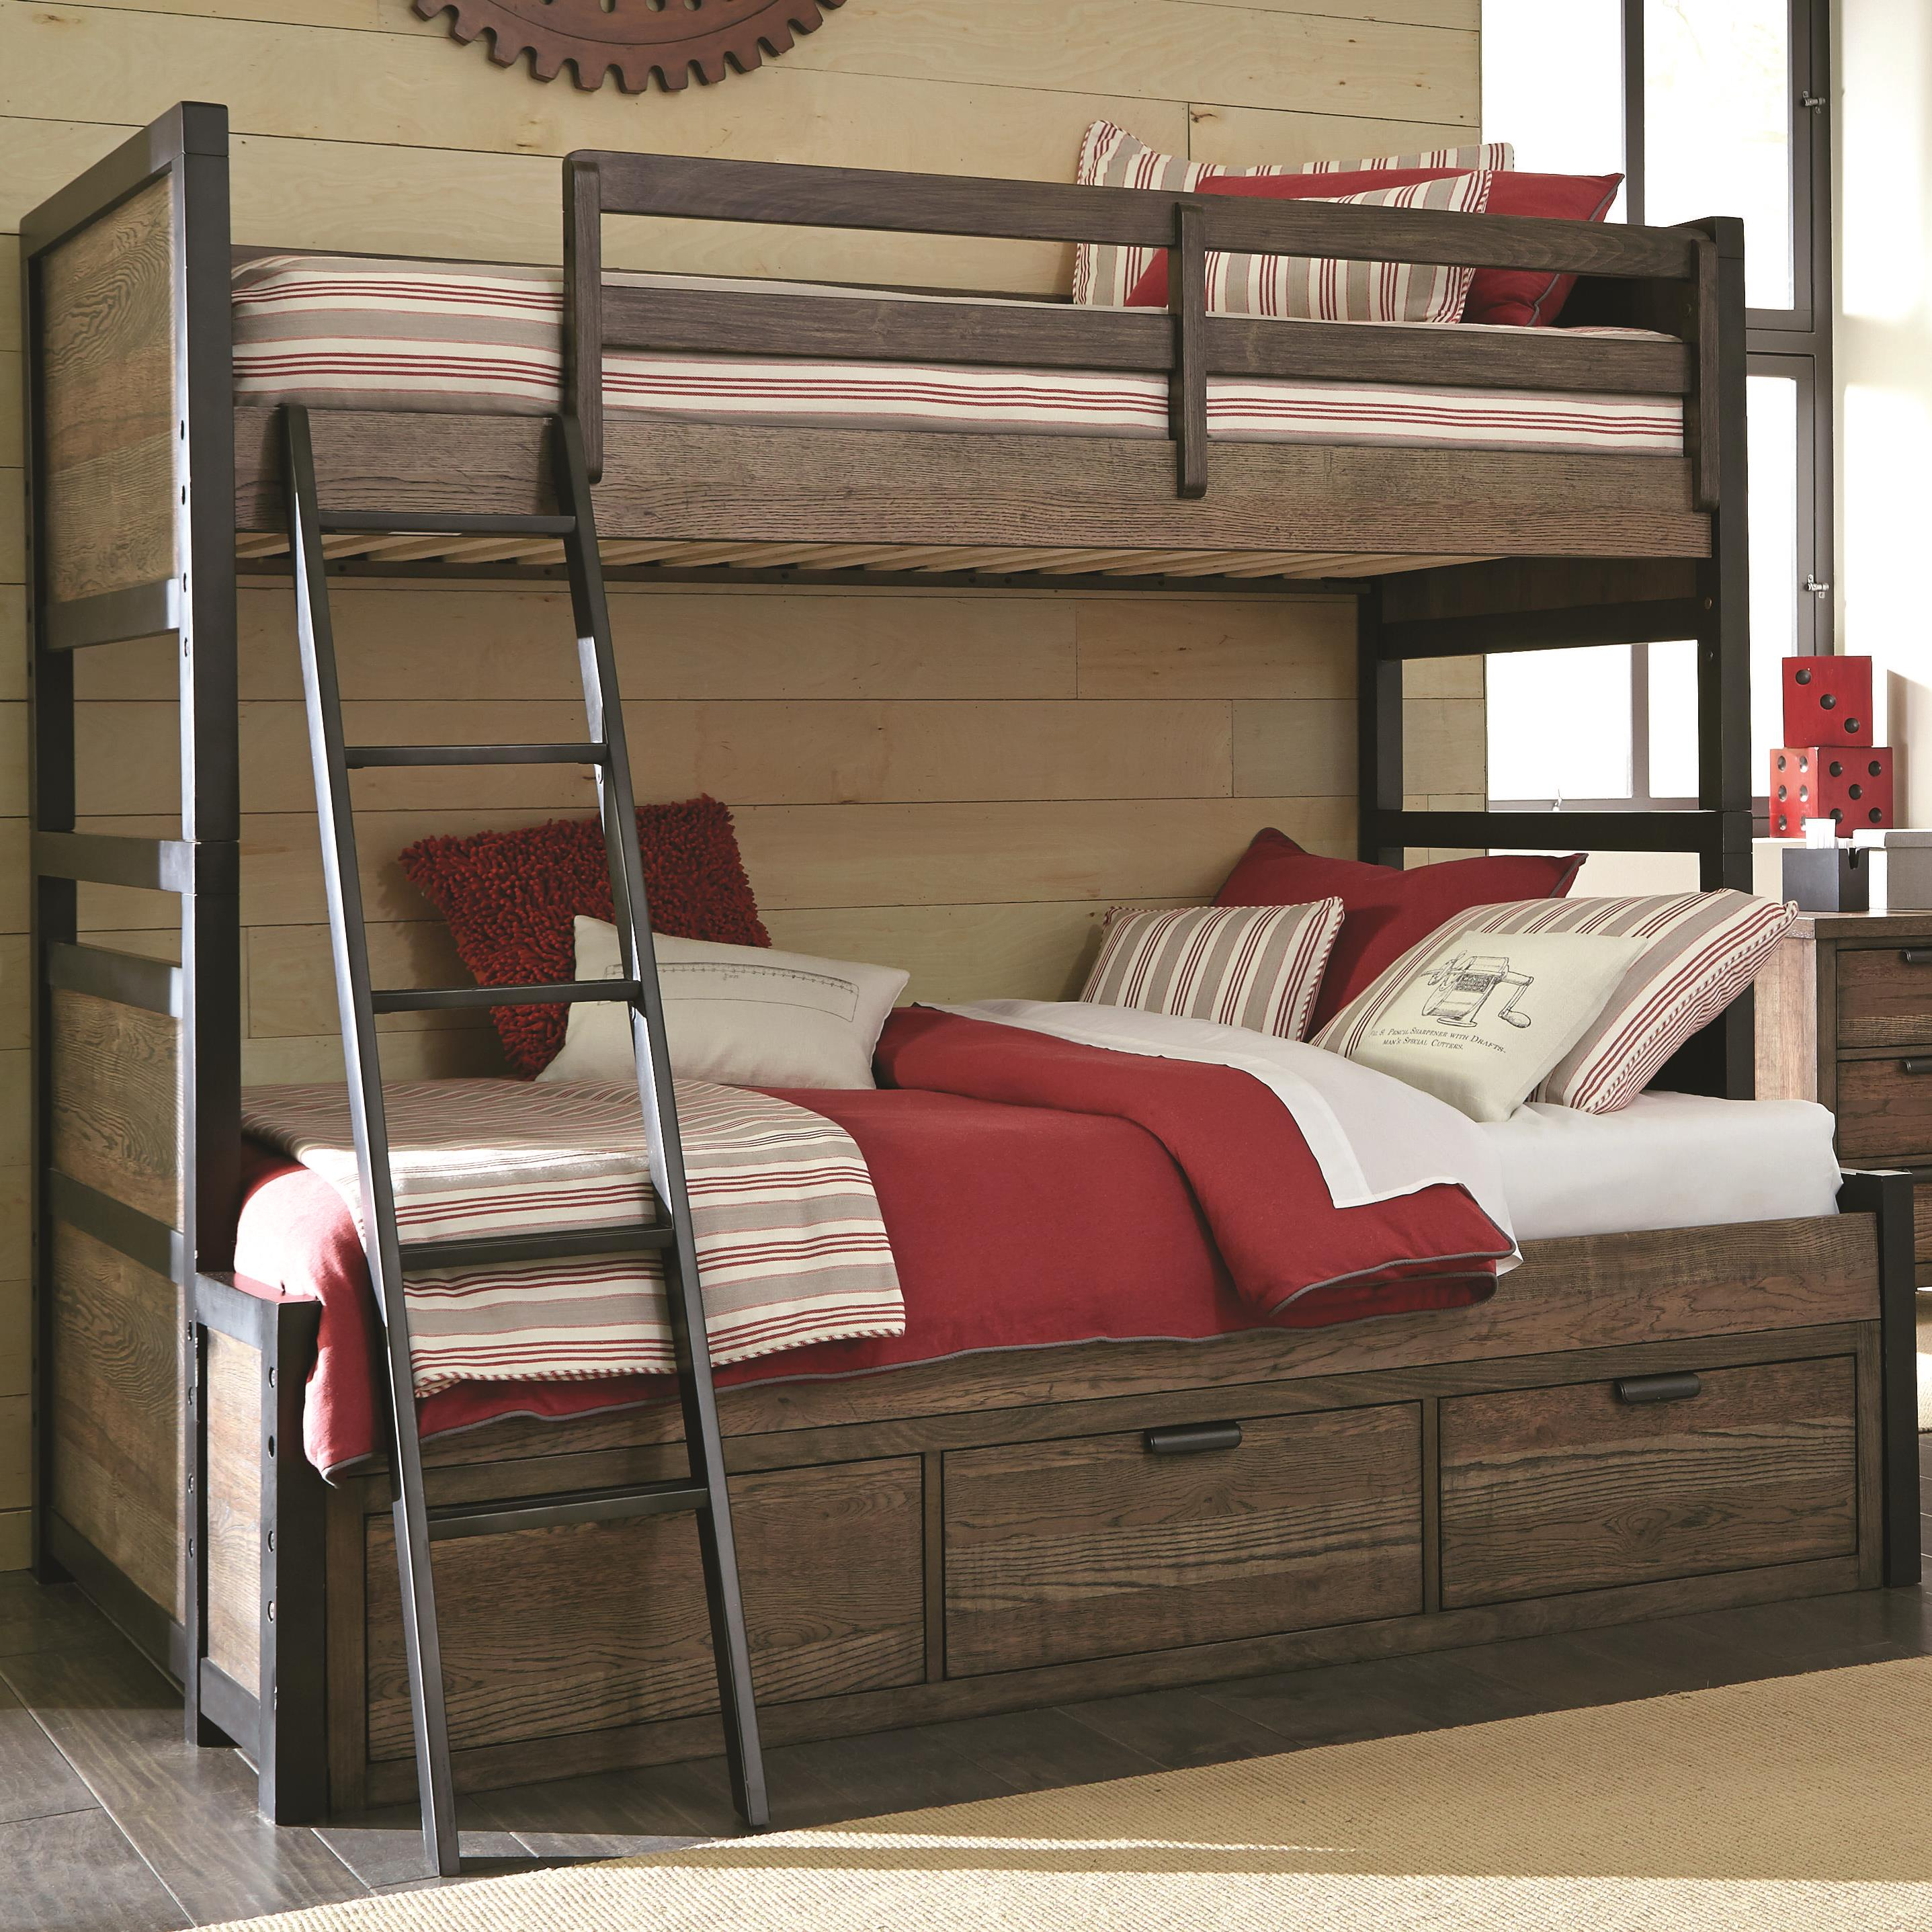 crossover elite full beds bunk cross industries over lea ff furniture bed